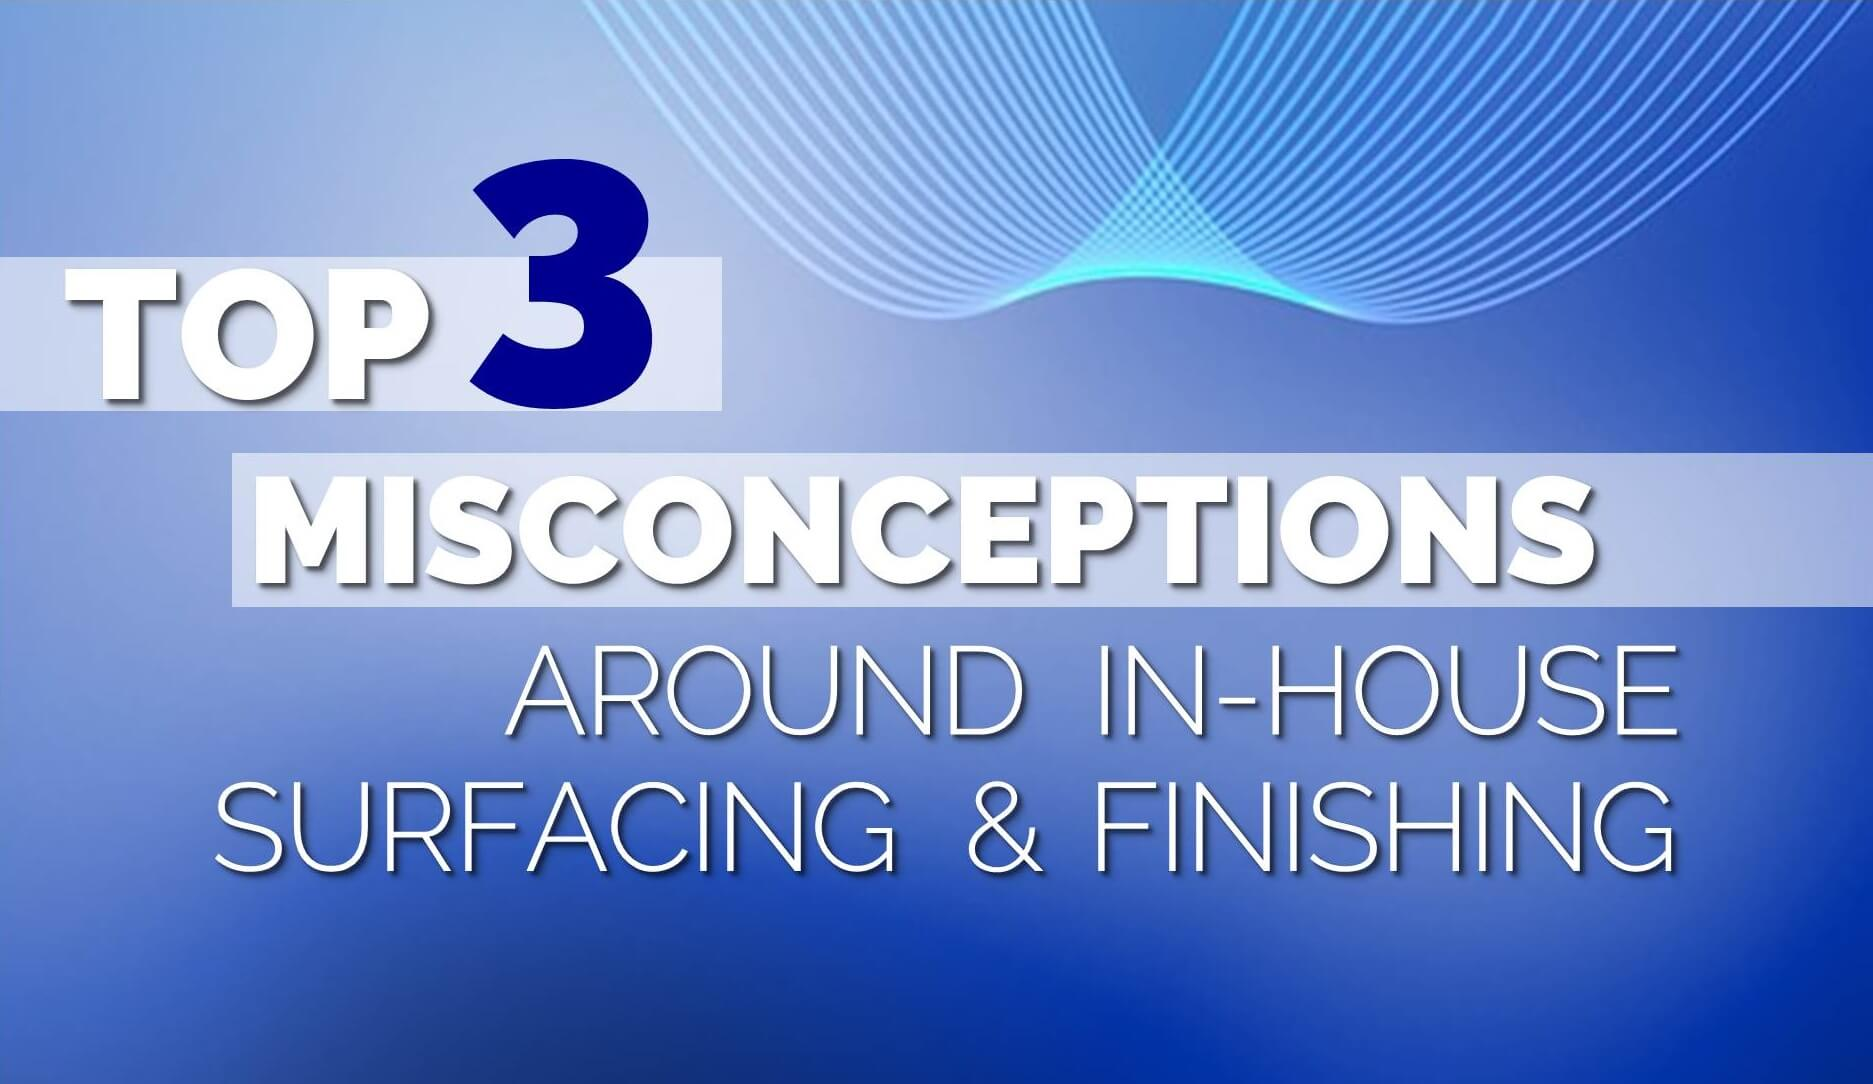 Top 3 Misconceptions Around In-House Surfacing and Finishing, a blog by Coburn Technologies